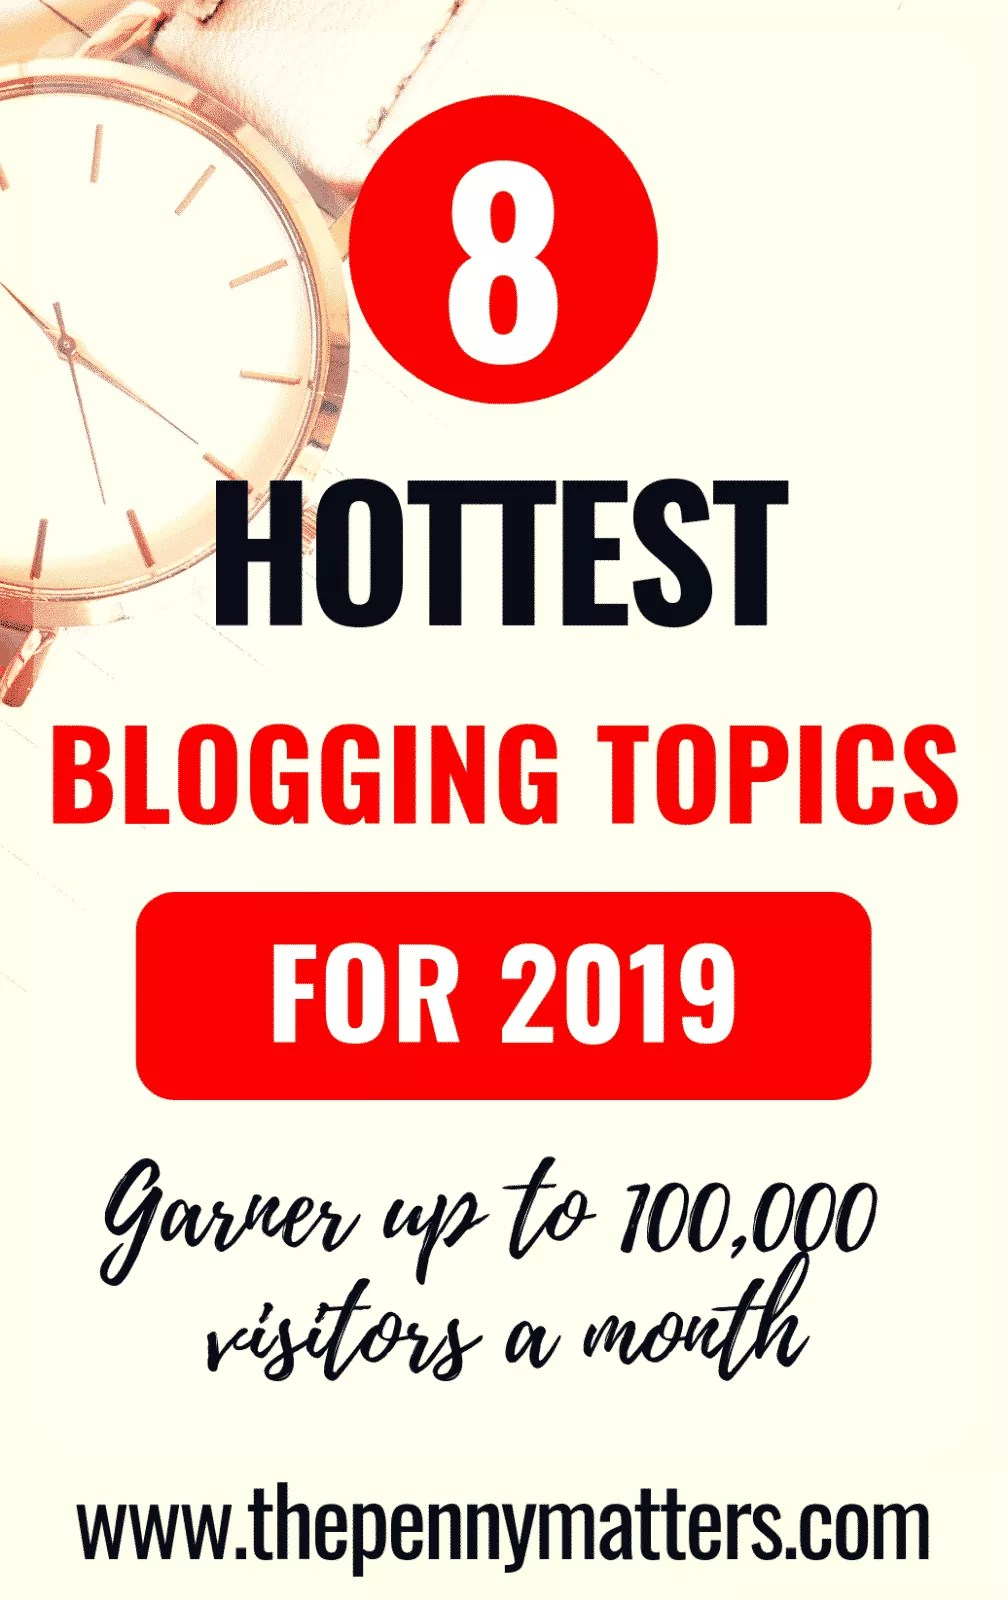 8 of the Hottest Blogging Topics to Blog About ~ Penny Matters